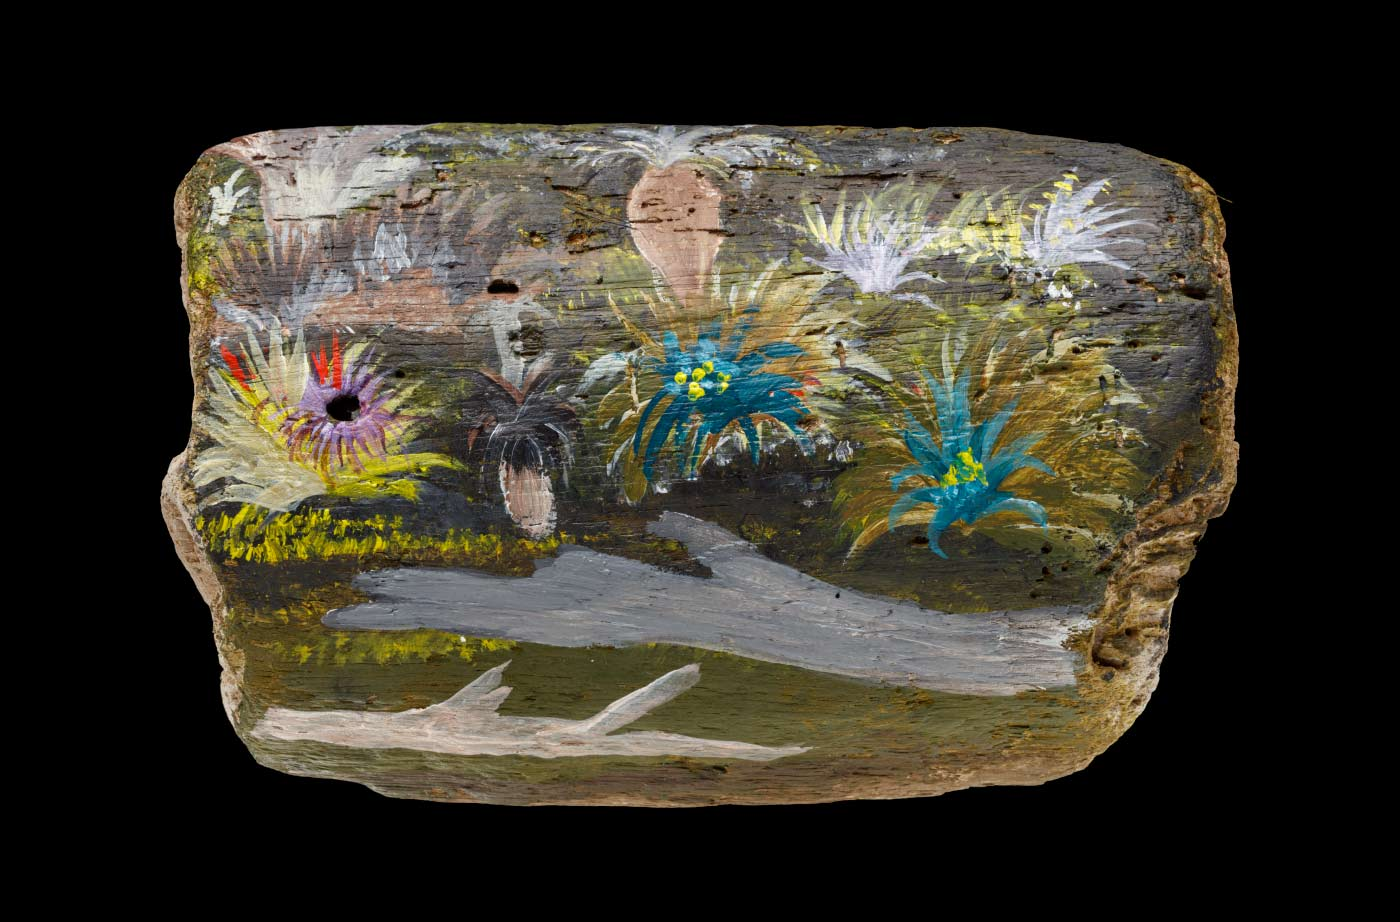 An acrylic painting on driftwood featuring flowers, foliage, and two logs. - click to view larger image